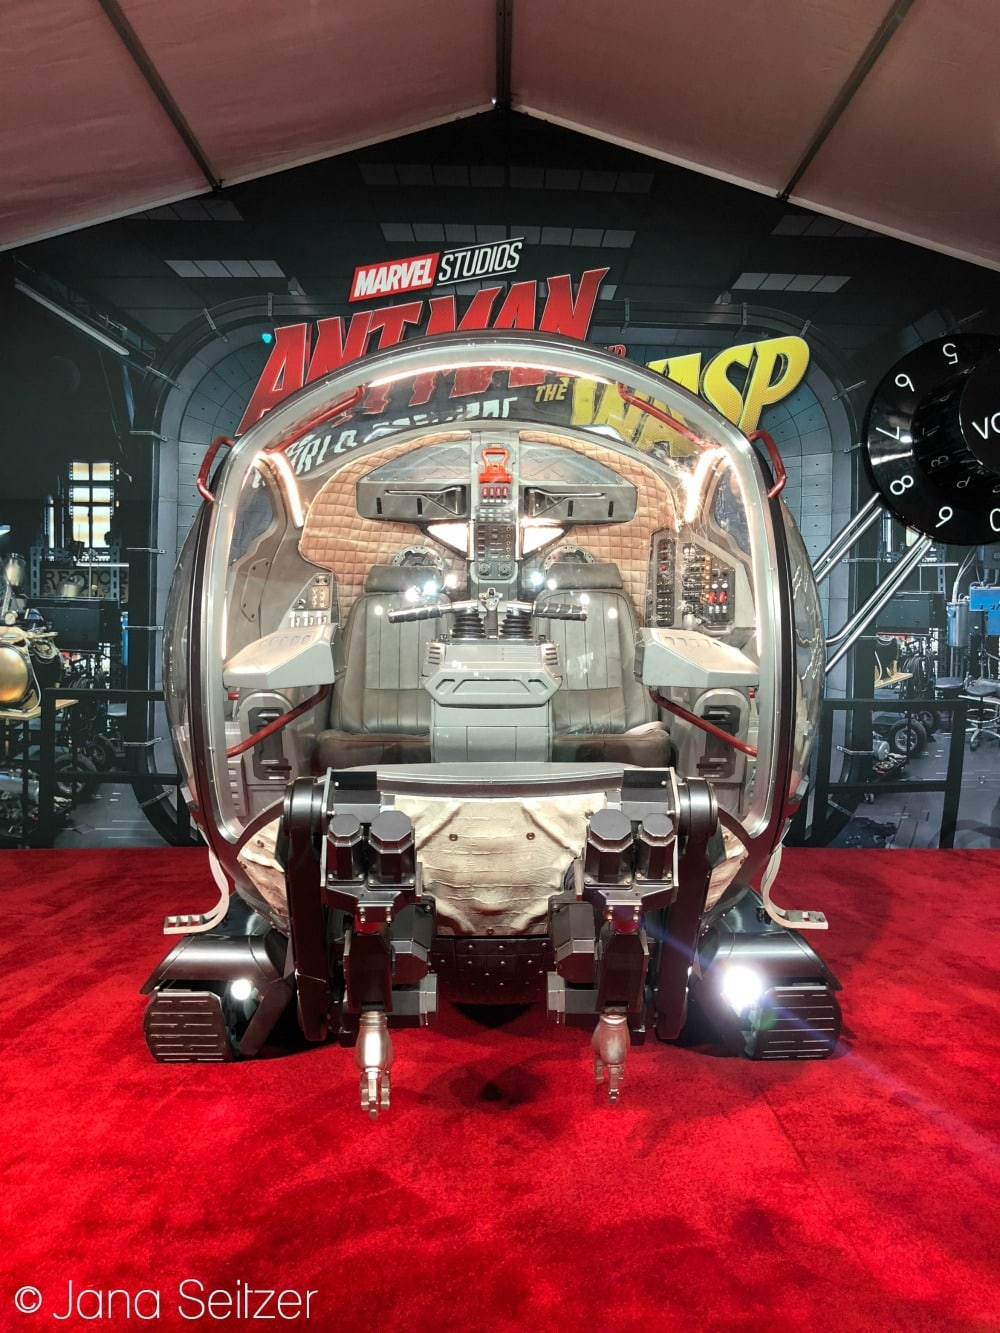 Ant-Man and the Wasp Red Carpet Premiere - pod